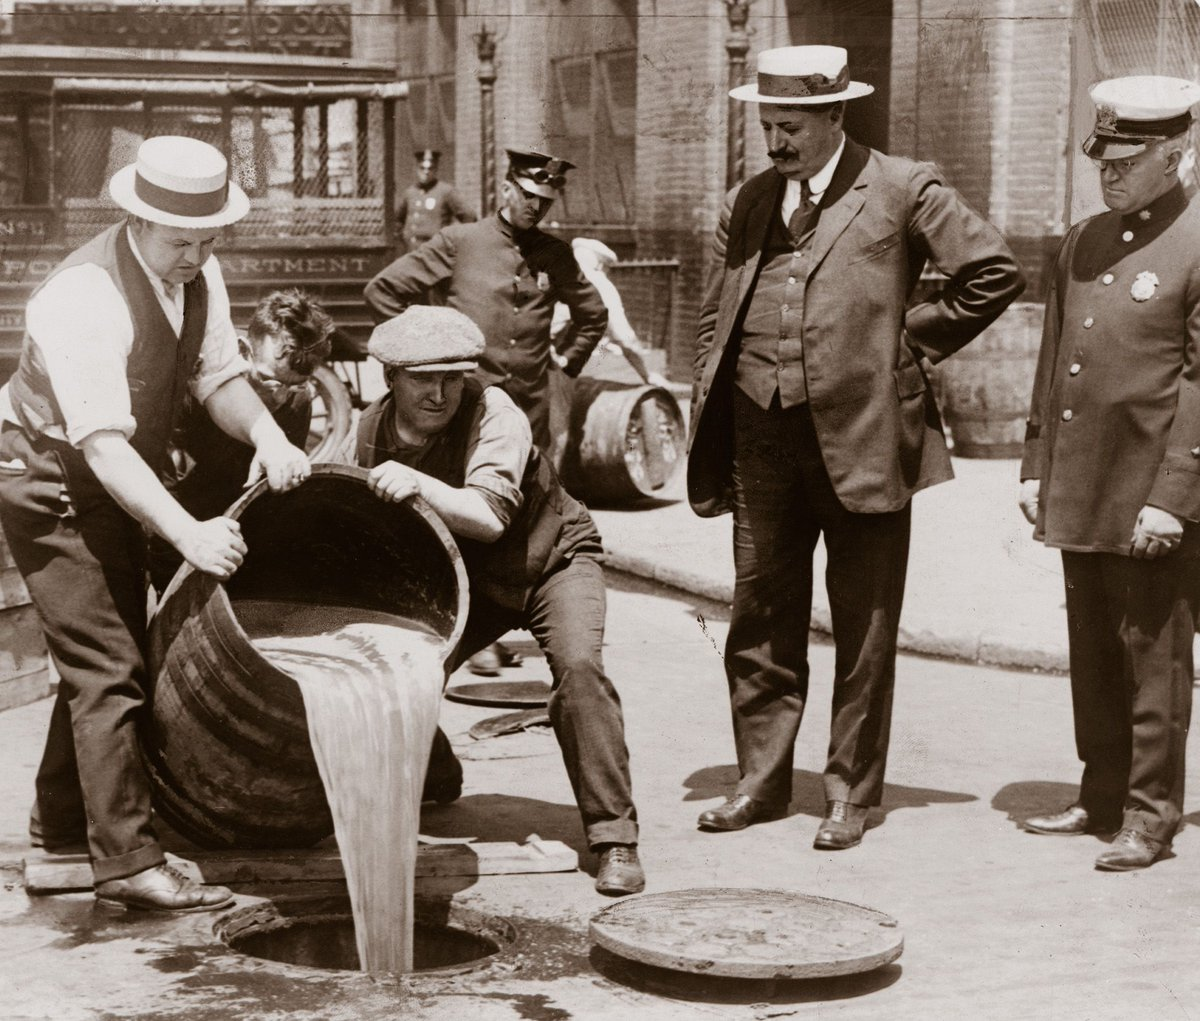 Cheers to Repeal Day, so that we may never have to endure prohibition again. https://t.co/ih4WLVOFrE https://t.co/JXoJAwREIp